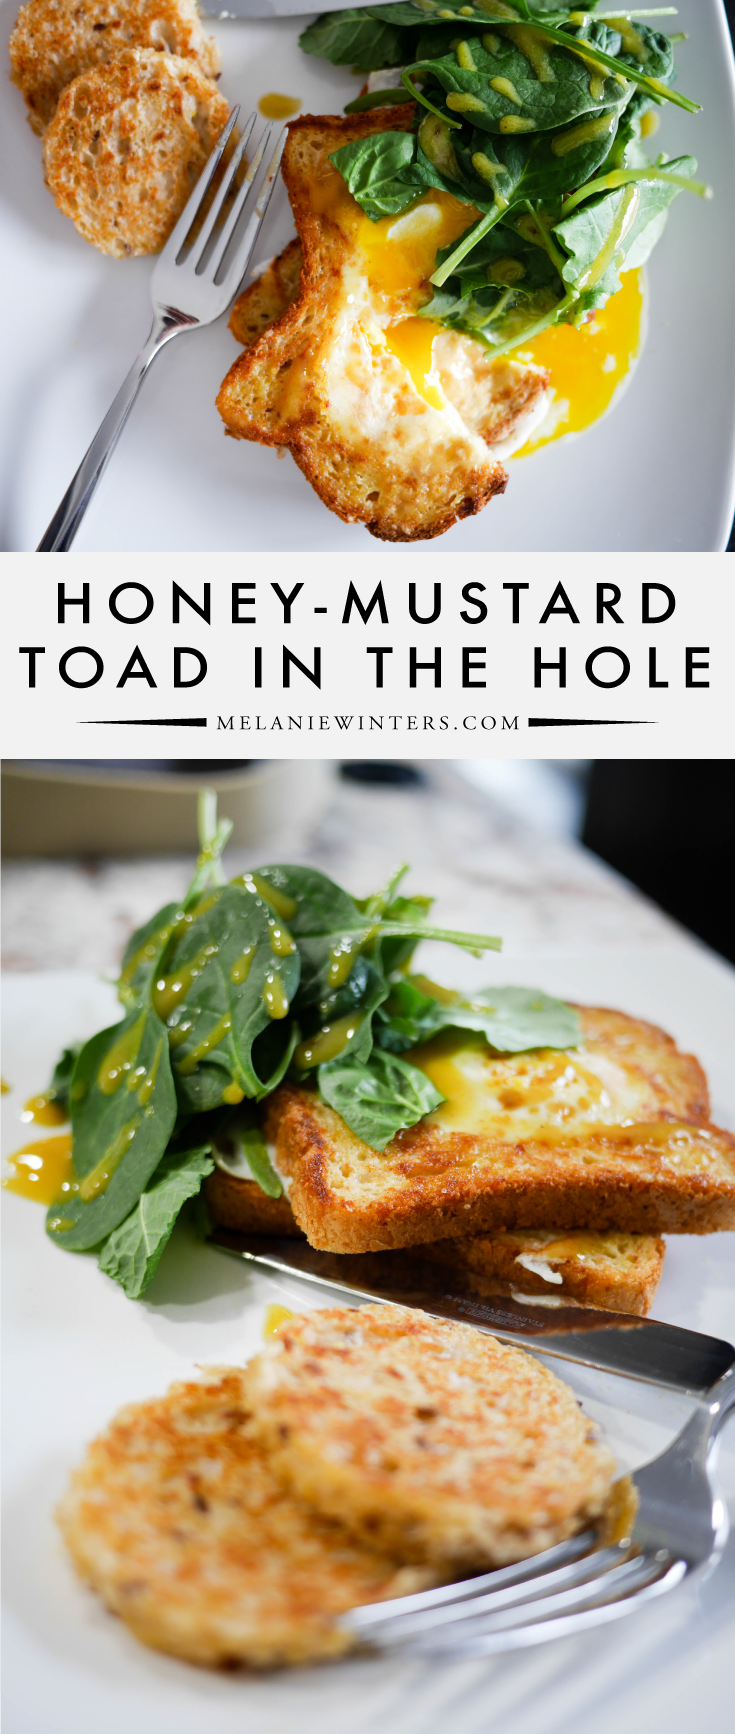 This amped up version of the classic toad in the hole is going to take your brunch game to the next level! Easy, yummy and healthy breakfast of champions! Oh, and did I mention the gluten free version is equally delicious?!